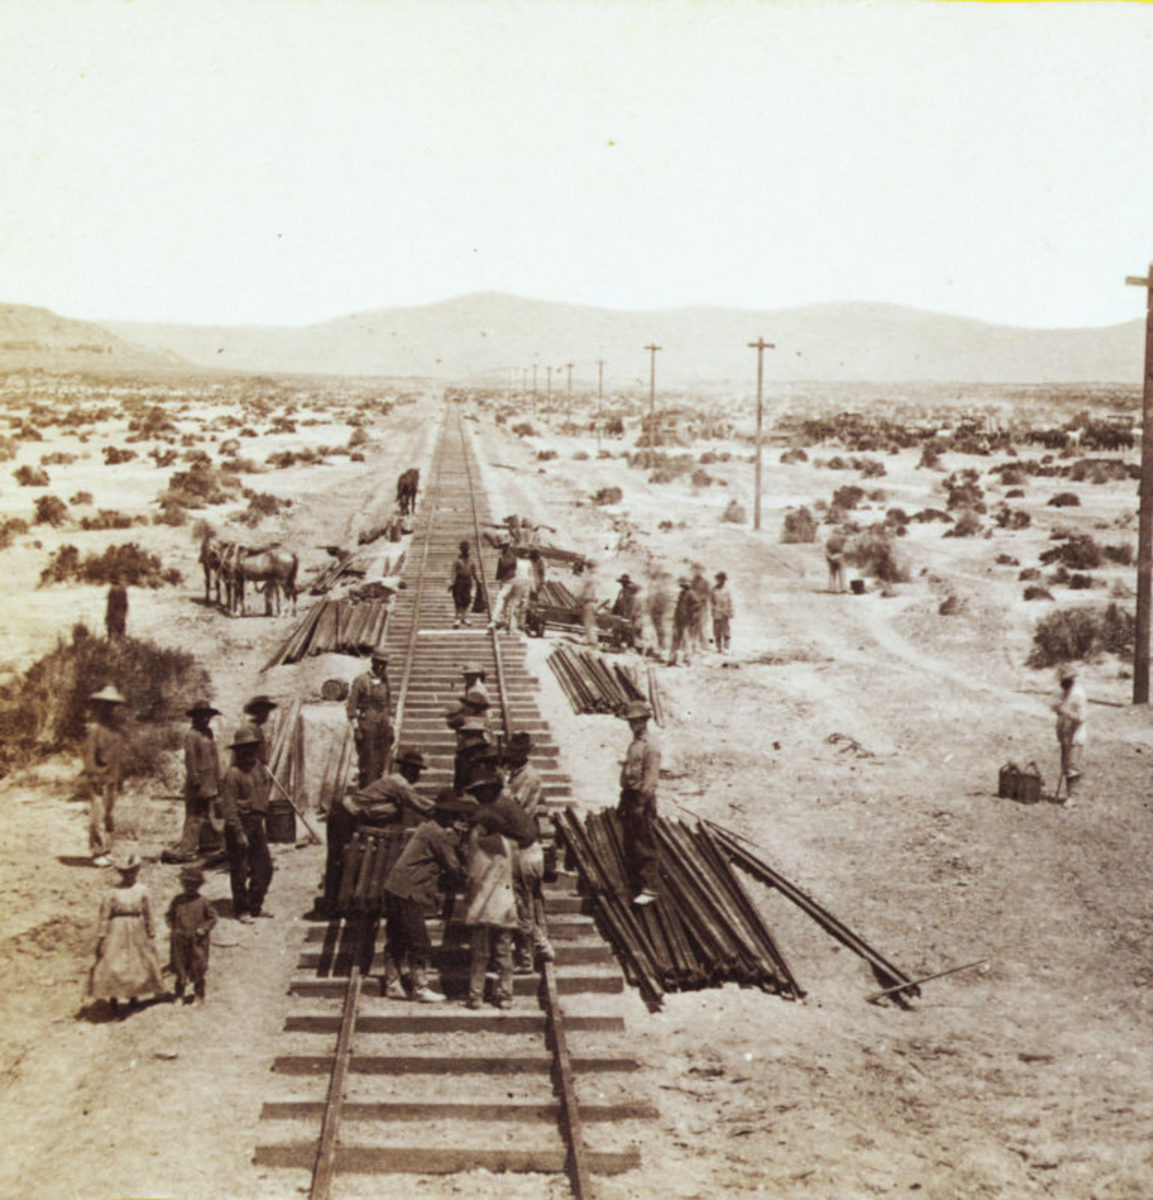 Numerous Chinese immigrants worked for the Central Pacific Railroad in the mid-1800s. Some are shown here installing tracks through Nevada's Humboldt Plains.